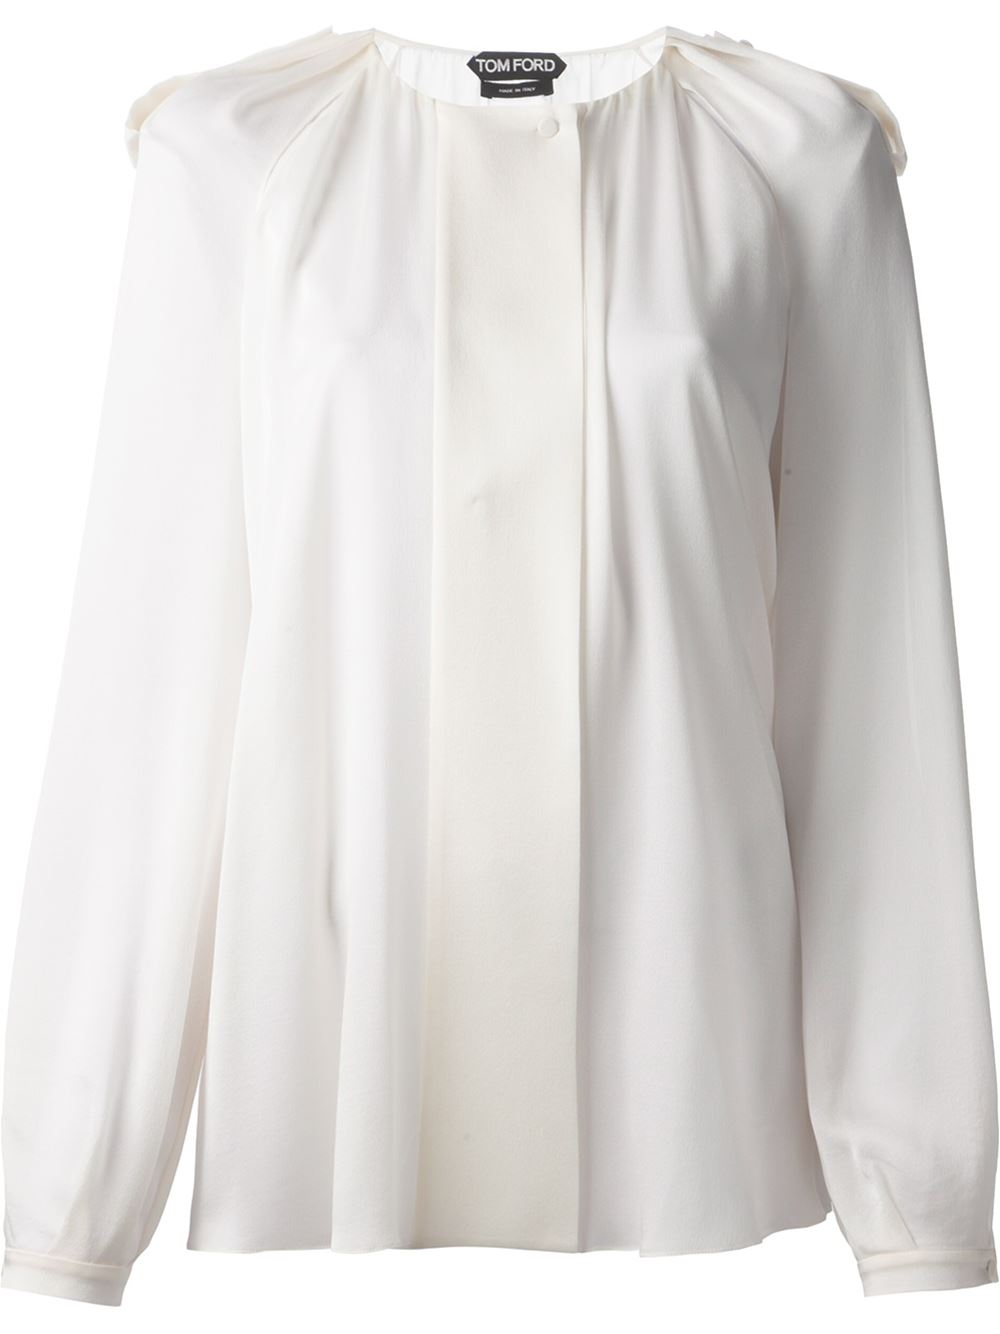 limited drapes draped boutique mi blouse chica dee